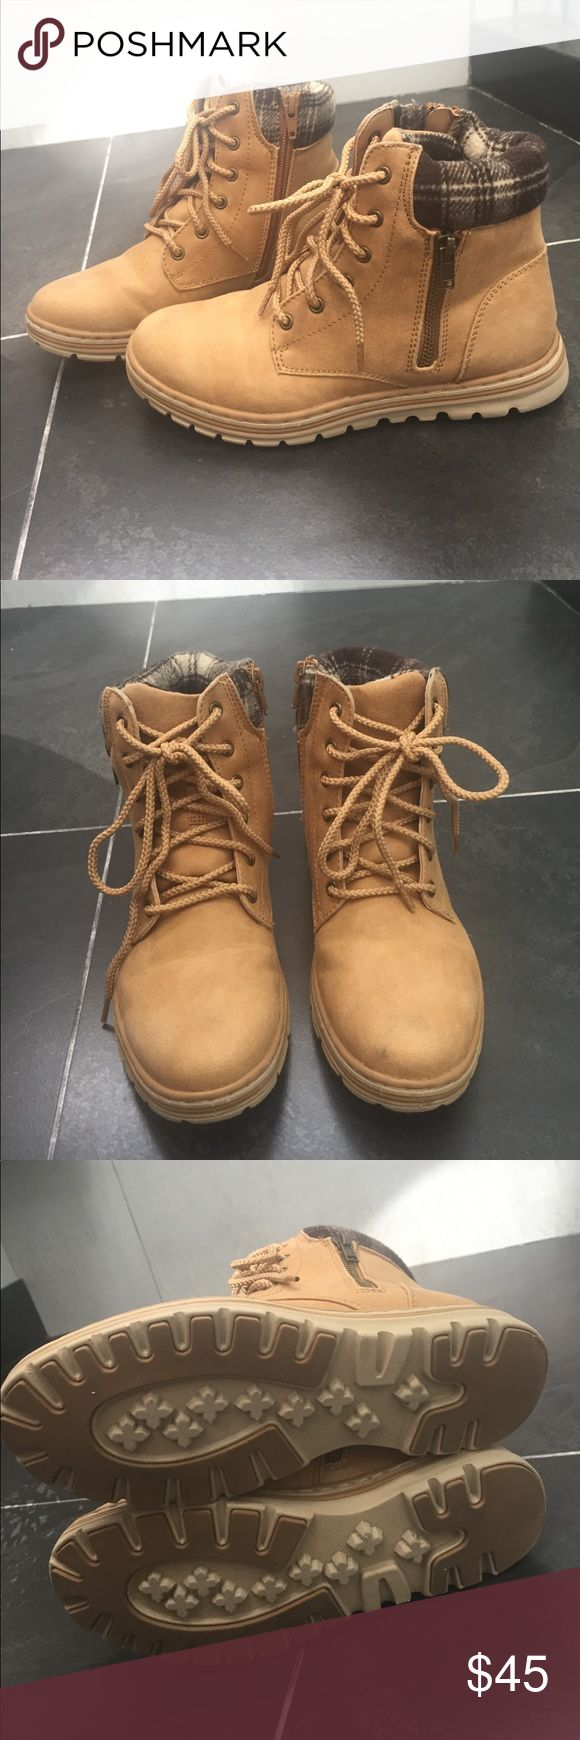 Timberland styled boots with plaid ankle design Timberland styled boots with plaid ankle design!! Extremely comfortable! Only worn twice, perfect condition aside from a little grey mark shown in the last picture. Reasonable offers accepted! white mountain Shoes Lace Up Boots